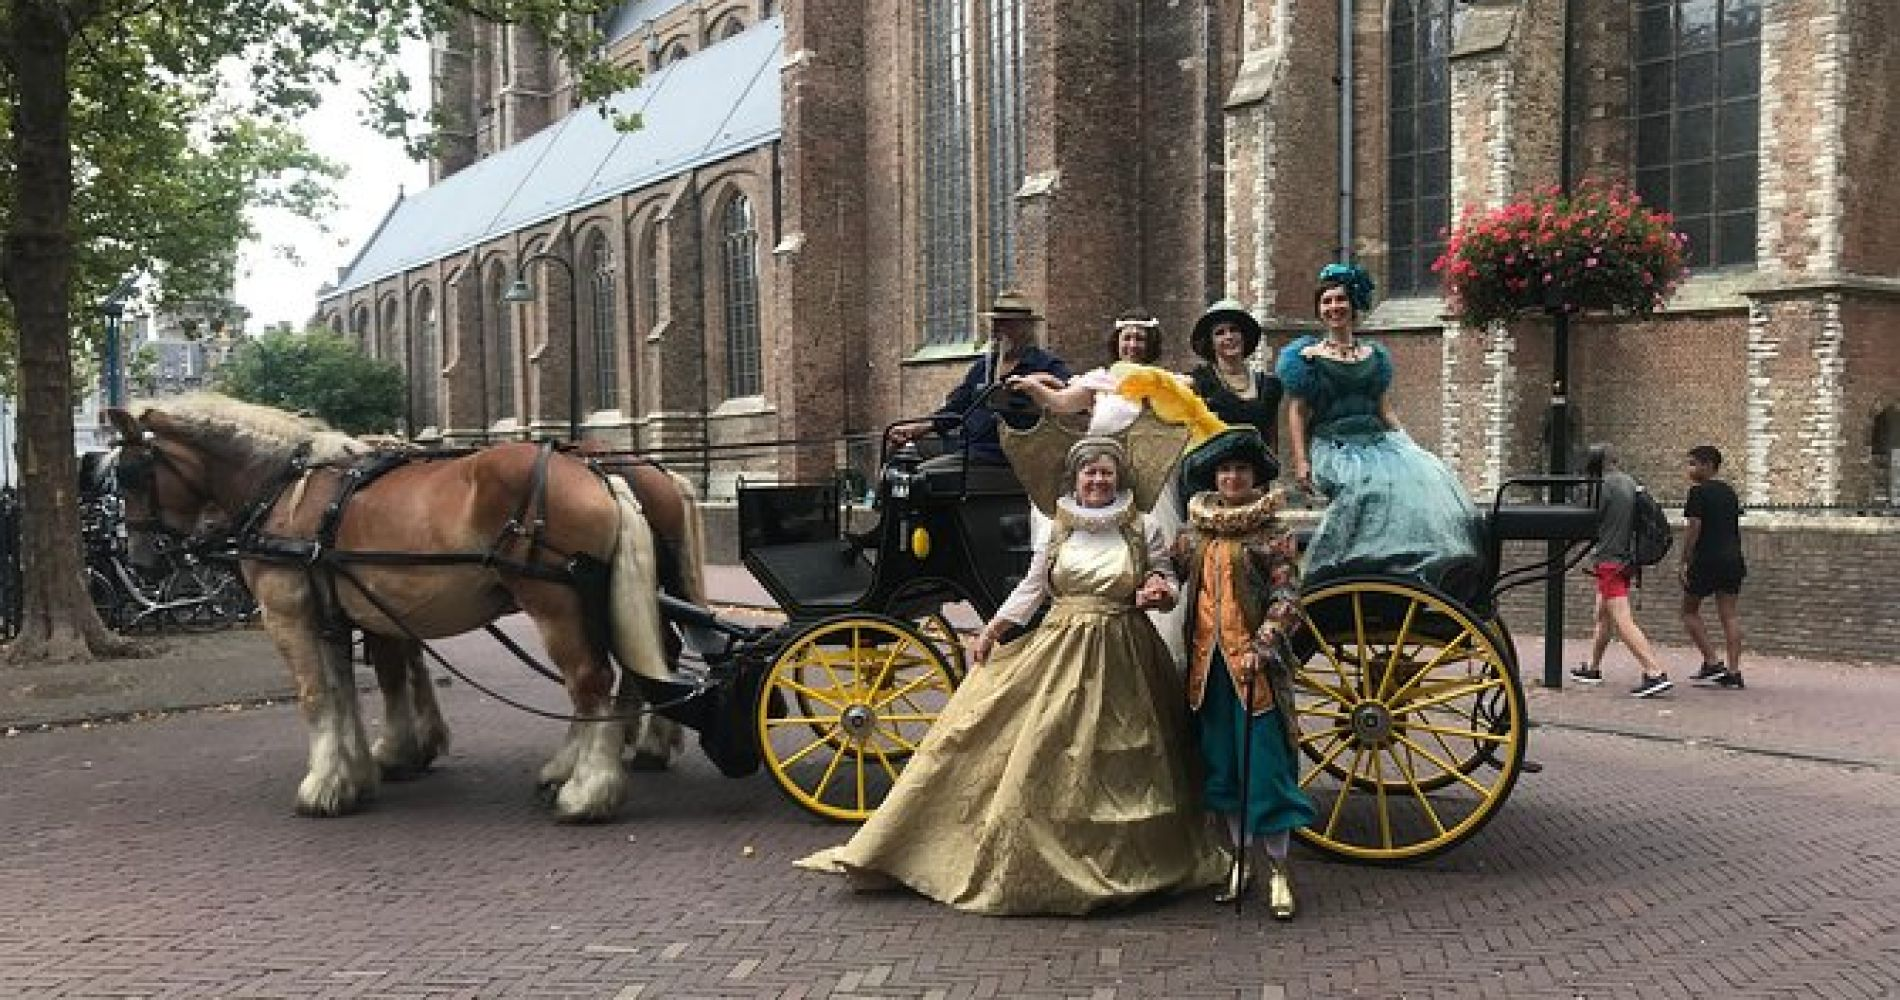 Tour with guide on a horse tram or horse-drawn carriage through historic Delft